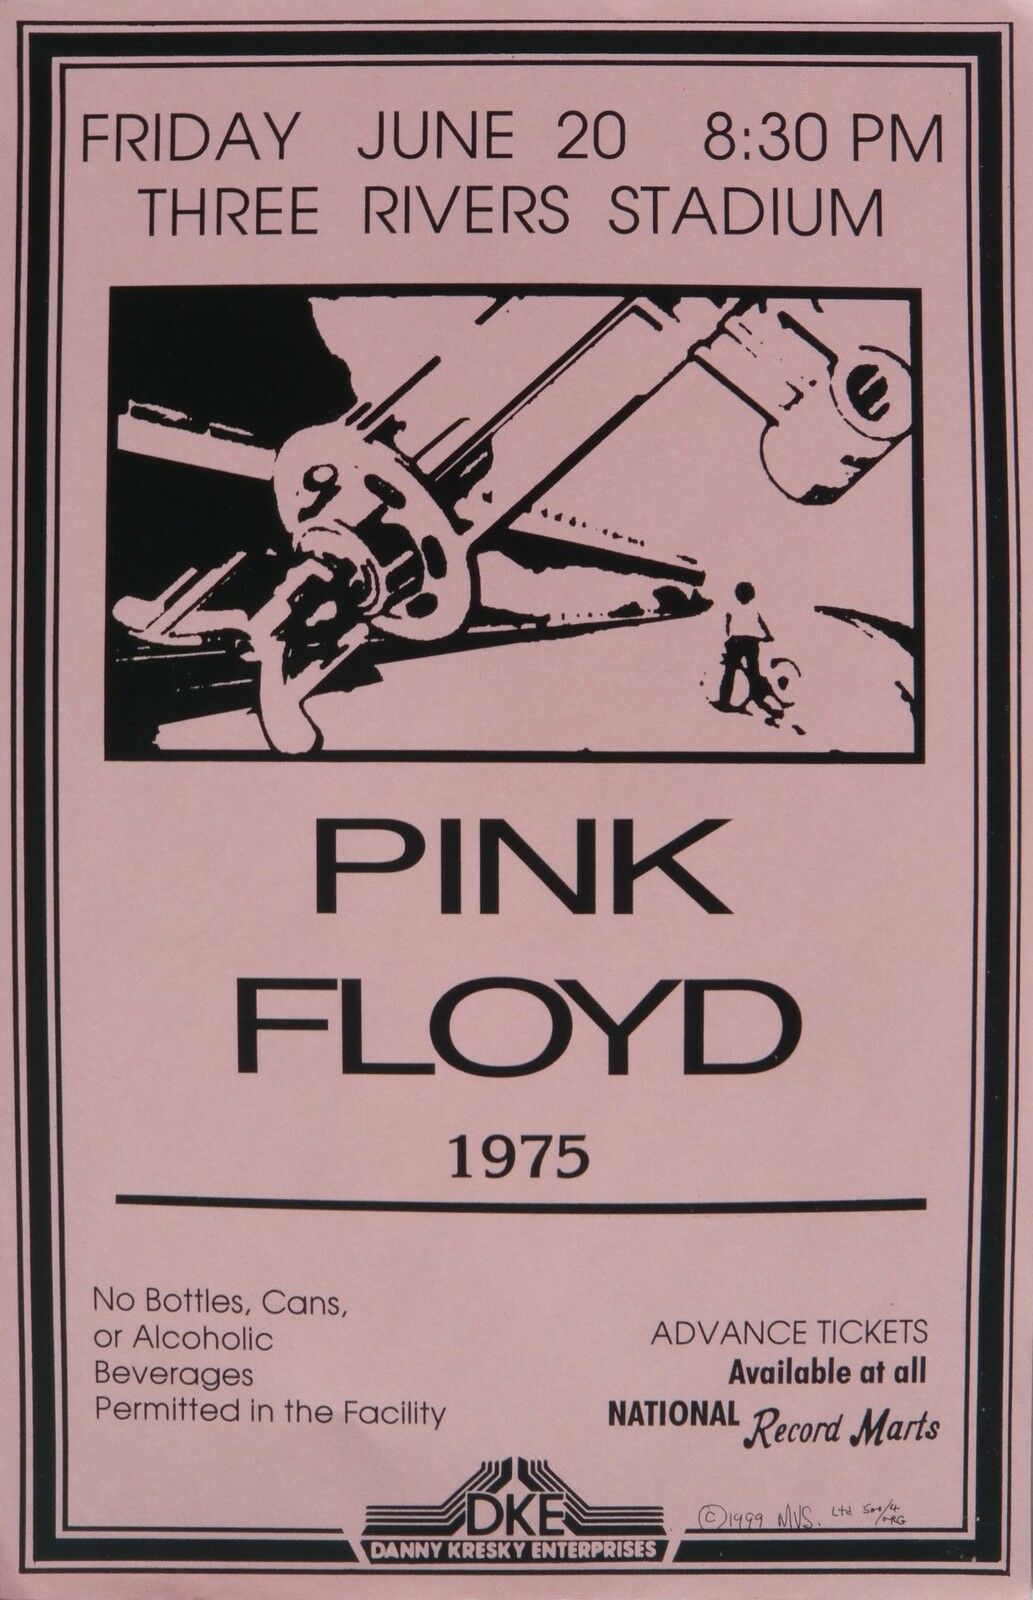 PINK FLOYD 1975 PITTSBURGH COMMERCIAL CONCERT TOUR POSTER ...